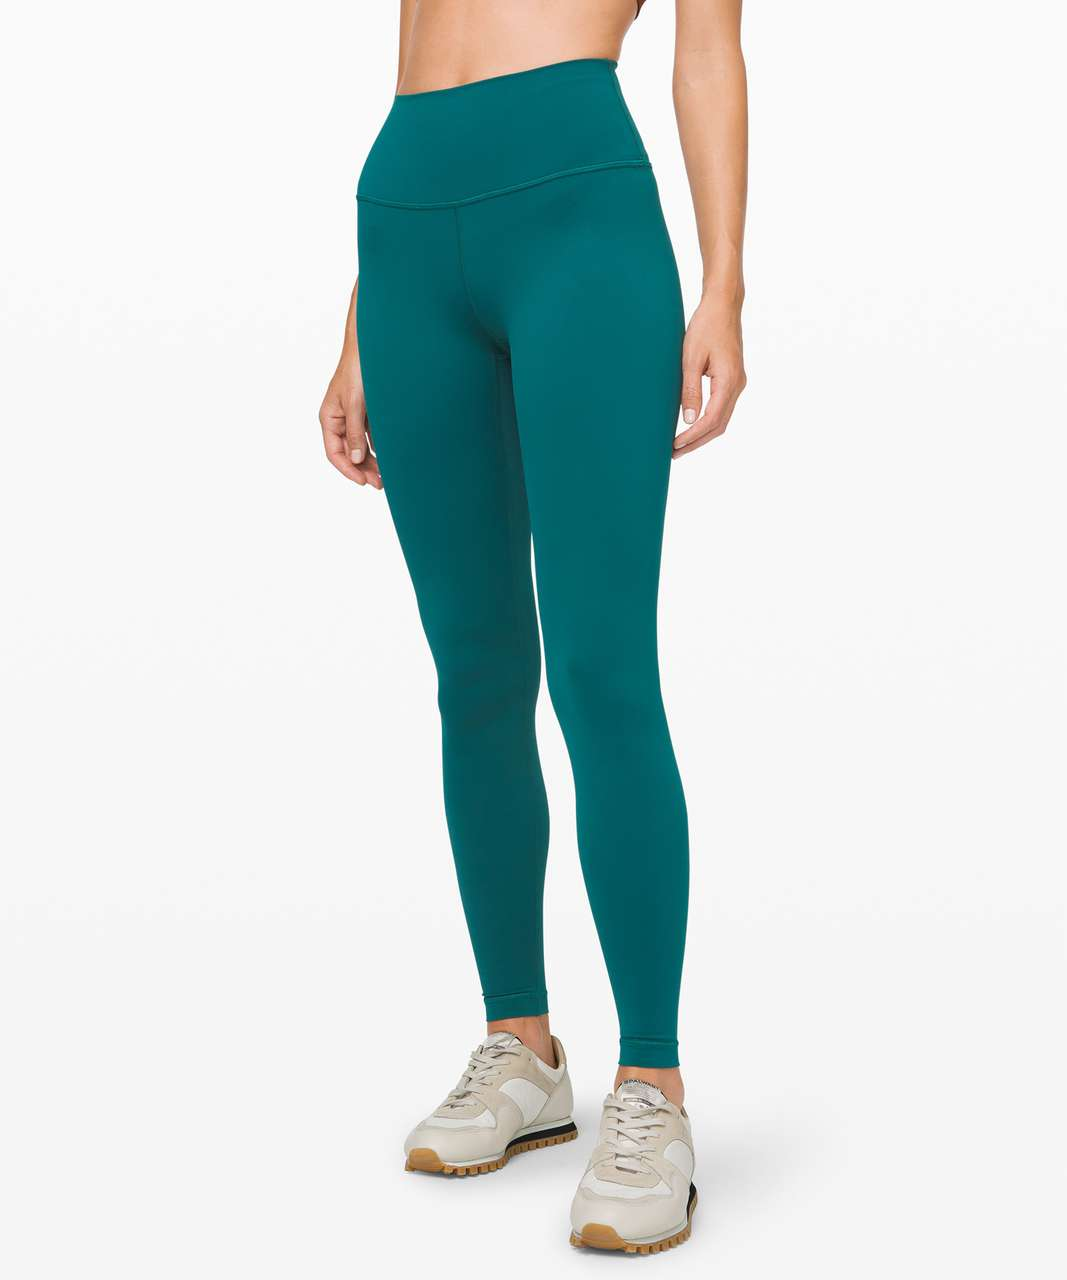 "Lululemon Wunder Under High-Rise Tight 28"" *Nulux - Emerald"